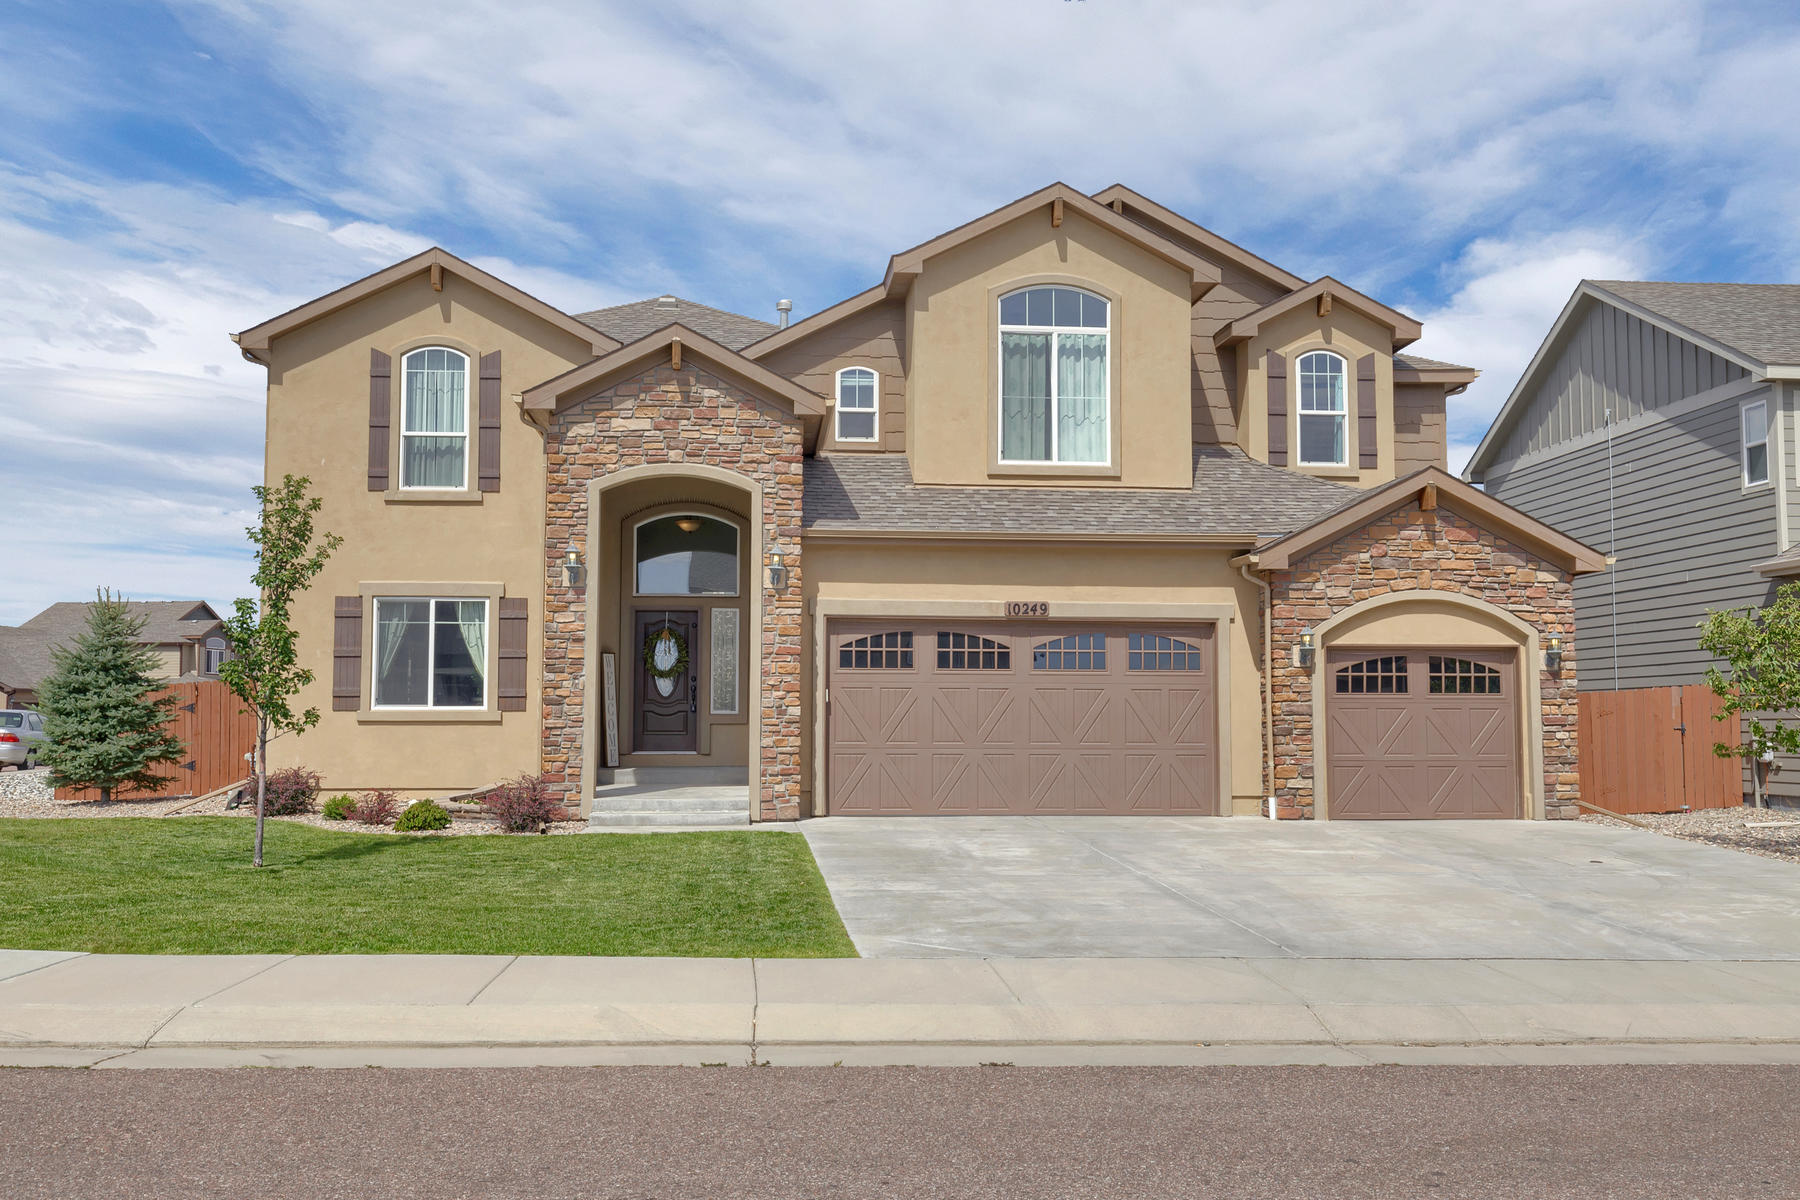 Single Family Home for Active at Mt Lincoln 10249 Mt Lincoln Drive Peyton, Colorado 80831 United States